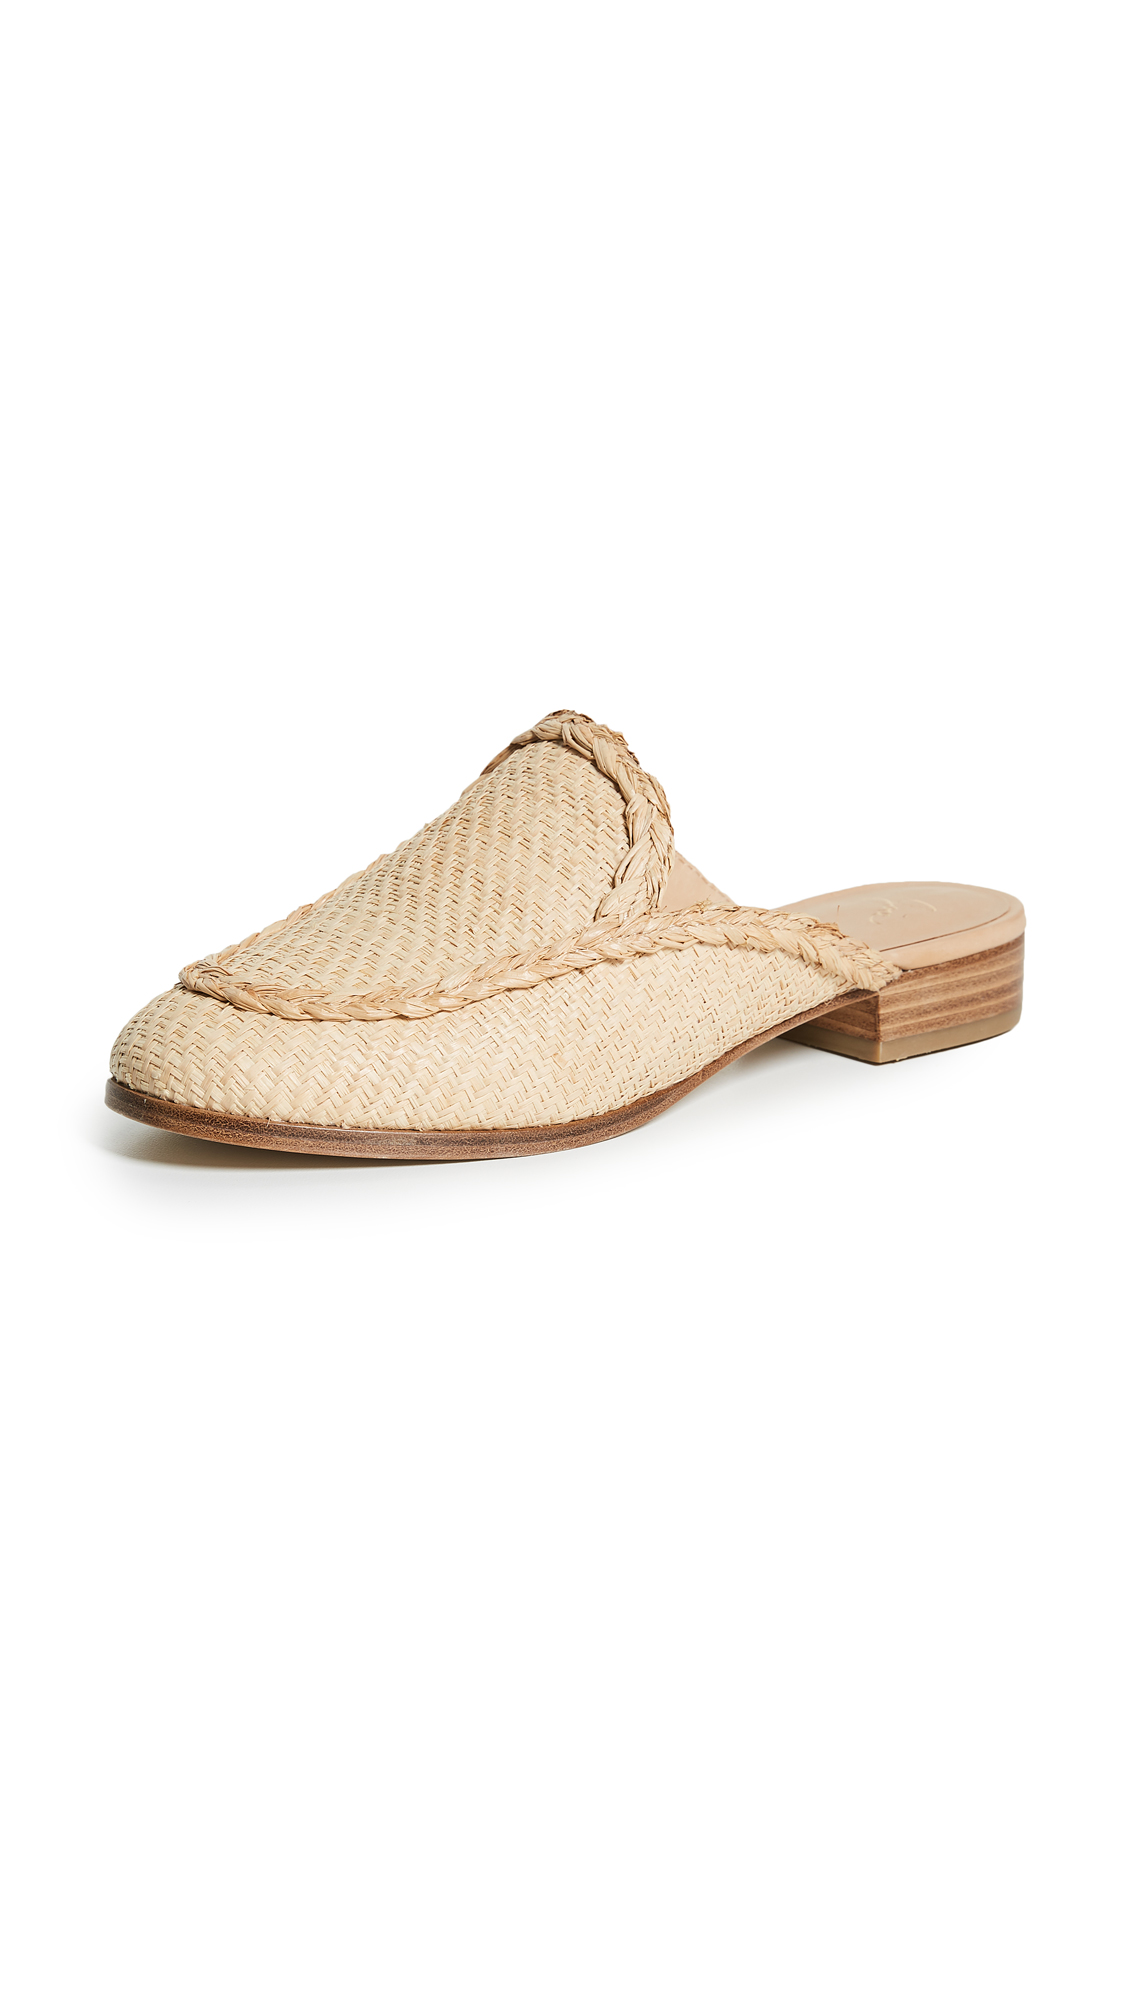 Joie Dallis Woven Mules - Natural